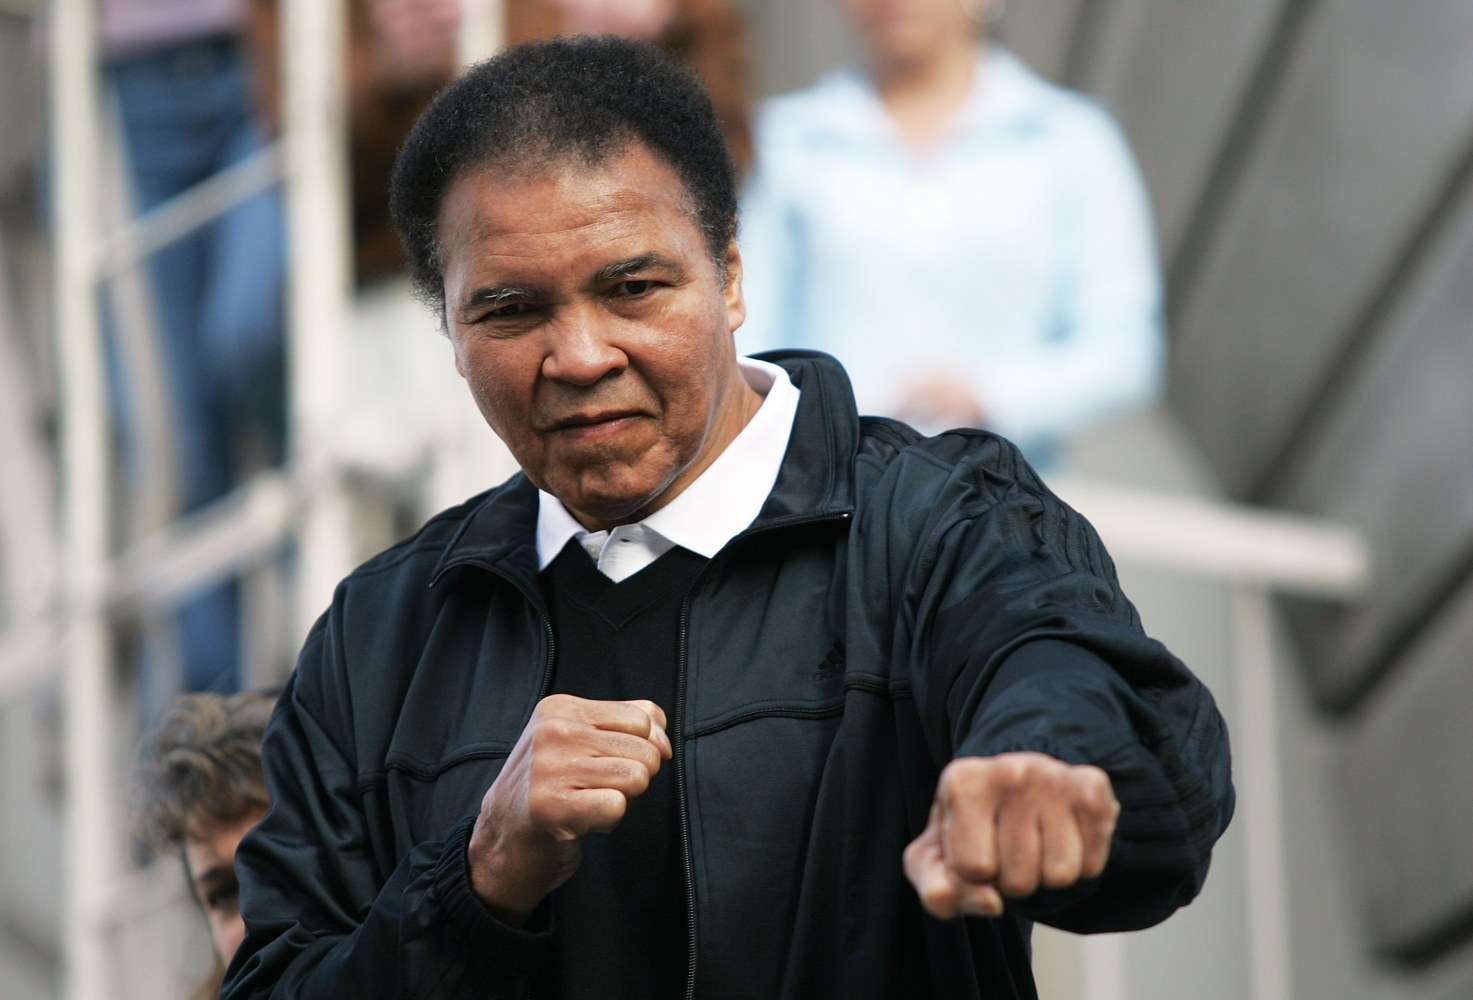 essay what muhammad ali taught me about my faith and identity los angeles marathon xx